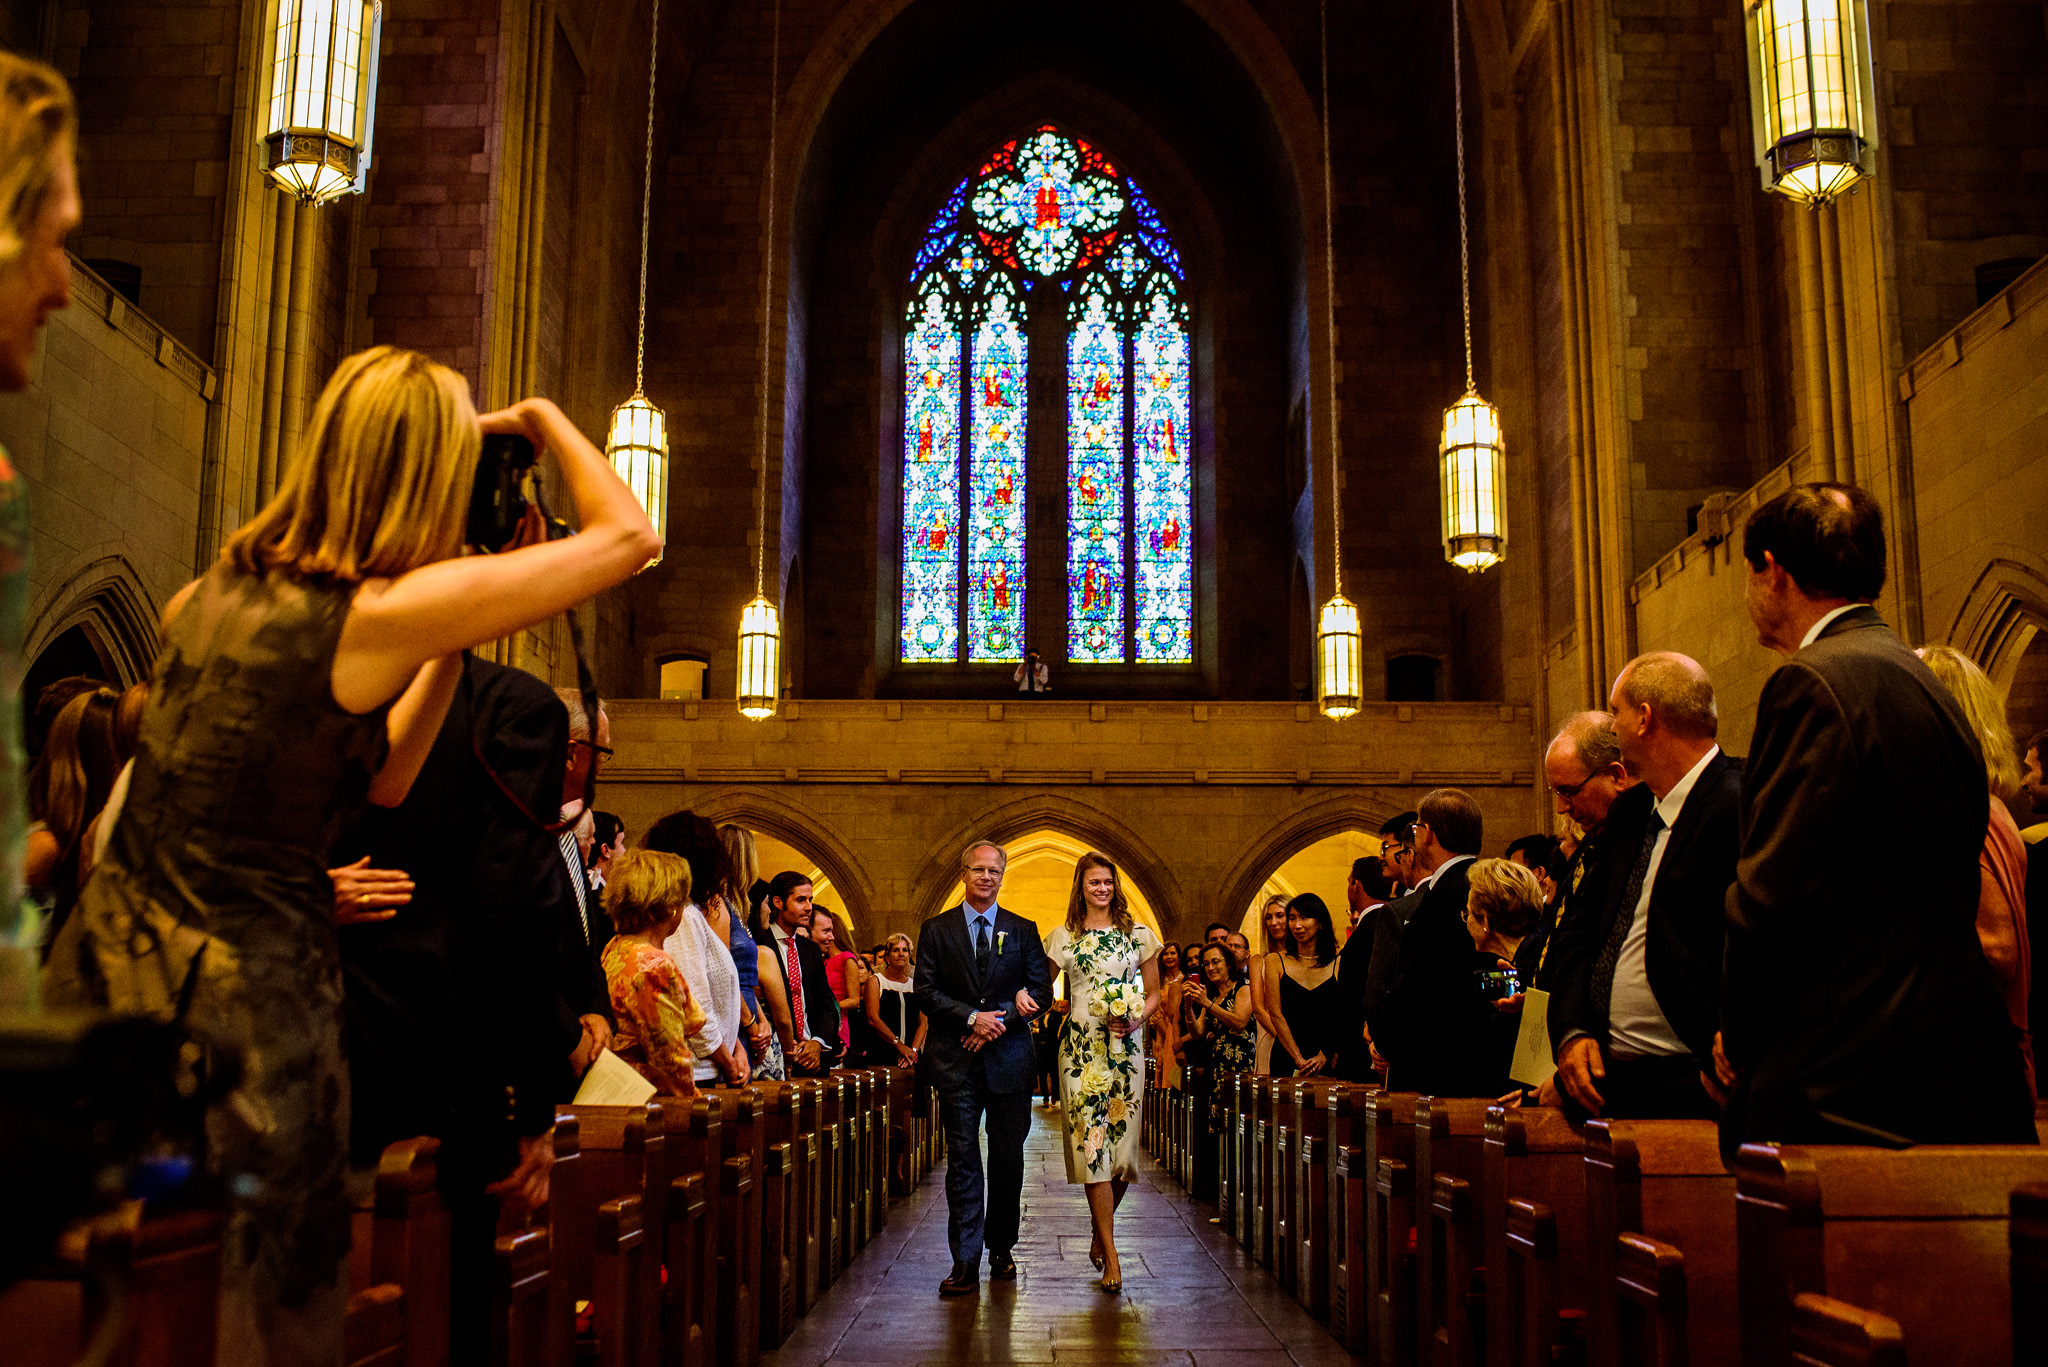 Father of the bride walks bride down the aisle in New York